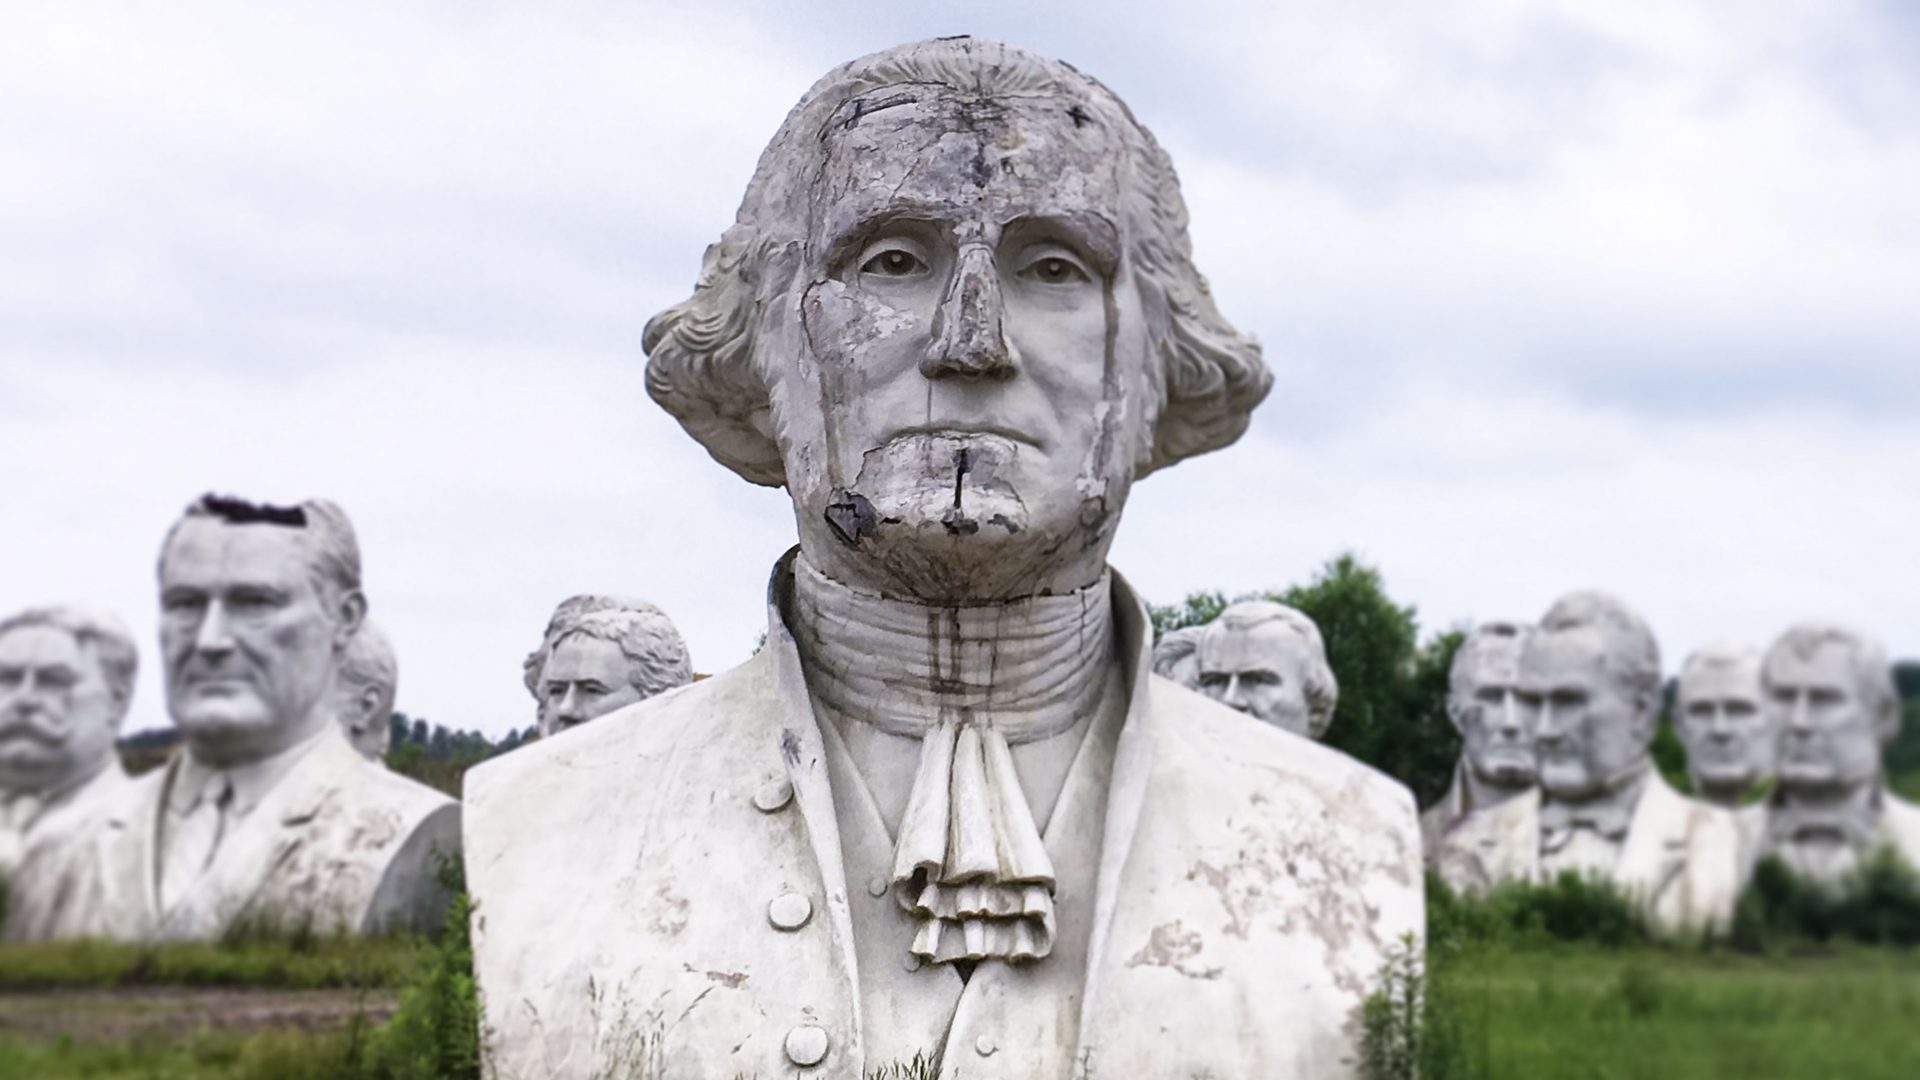 Busts of former US presidents occupy the land of Croaker farmer Howard Hankins in rural Virginia.